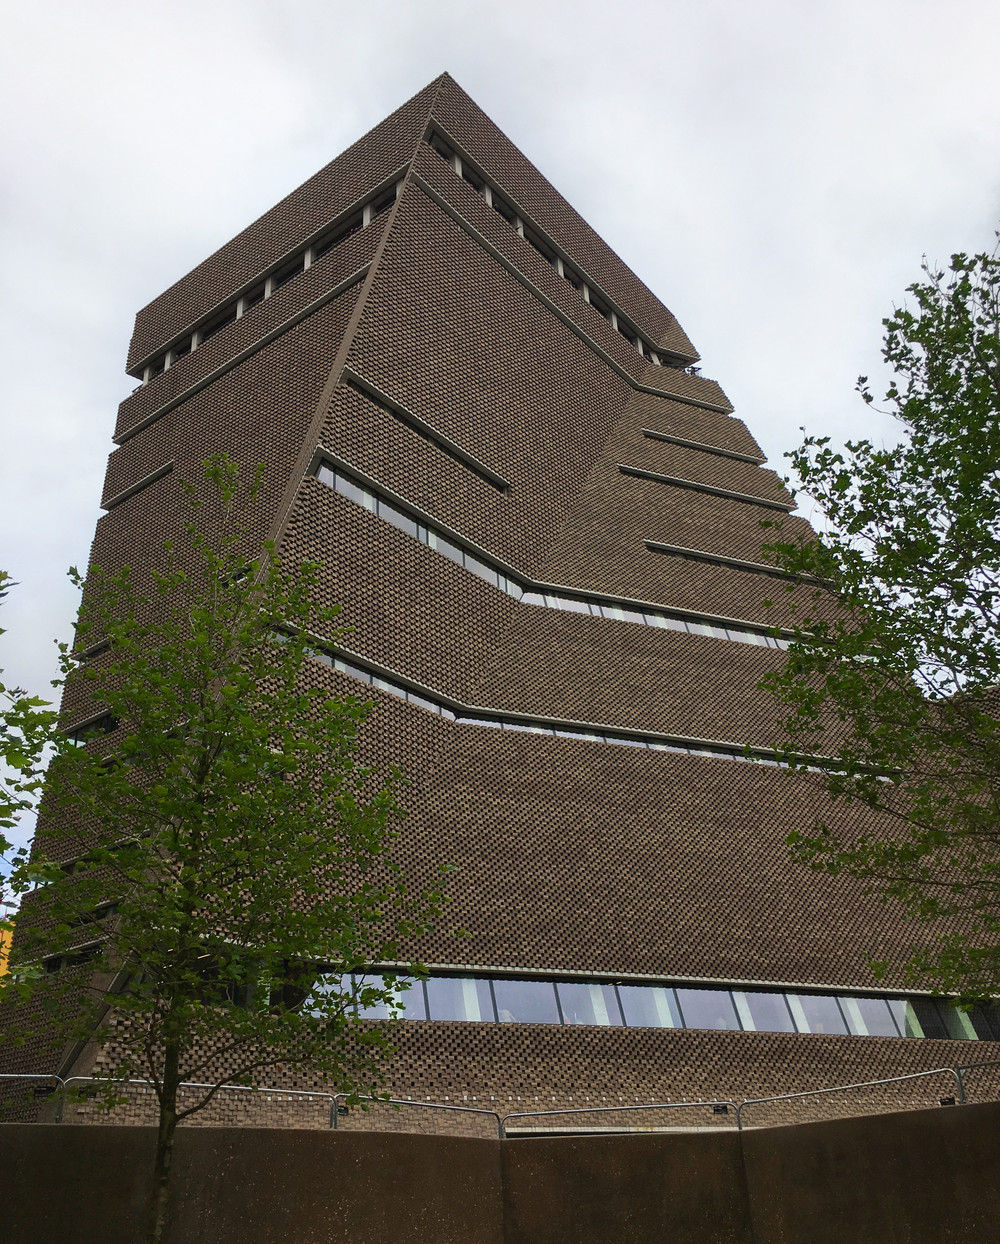 Tate Modern extension 'Switch House' (own photo)